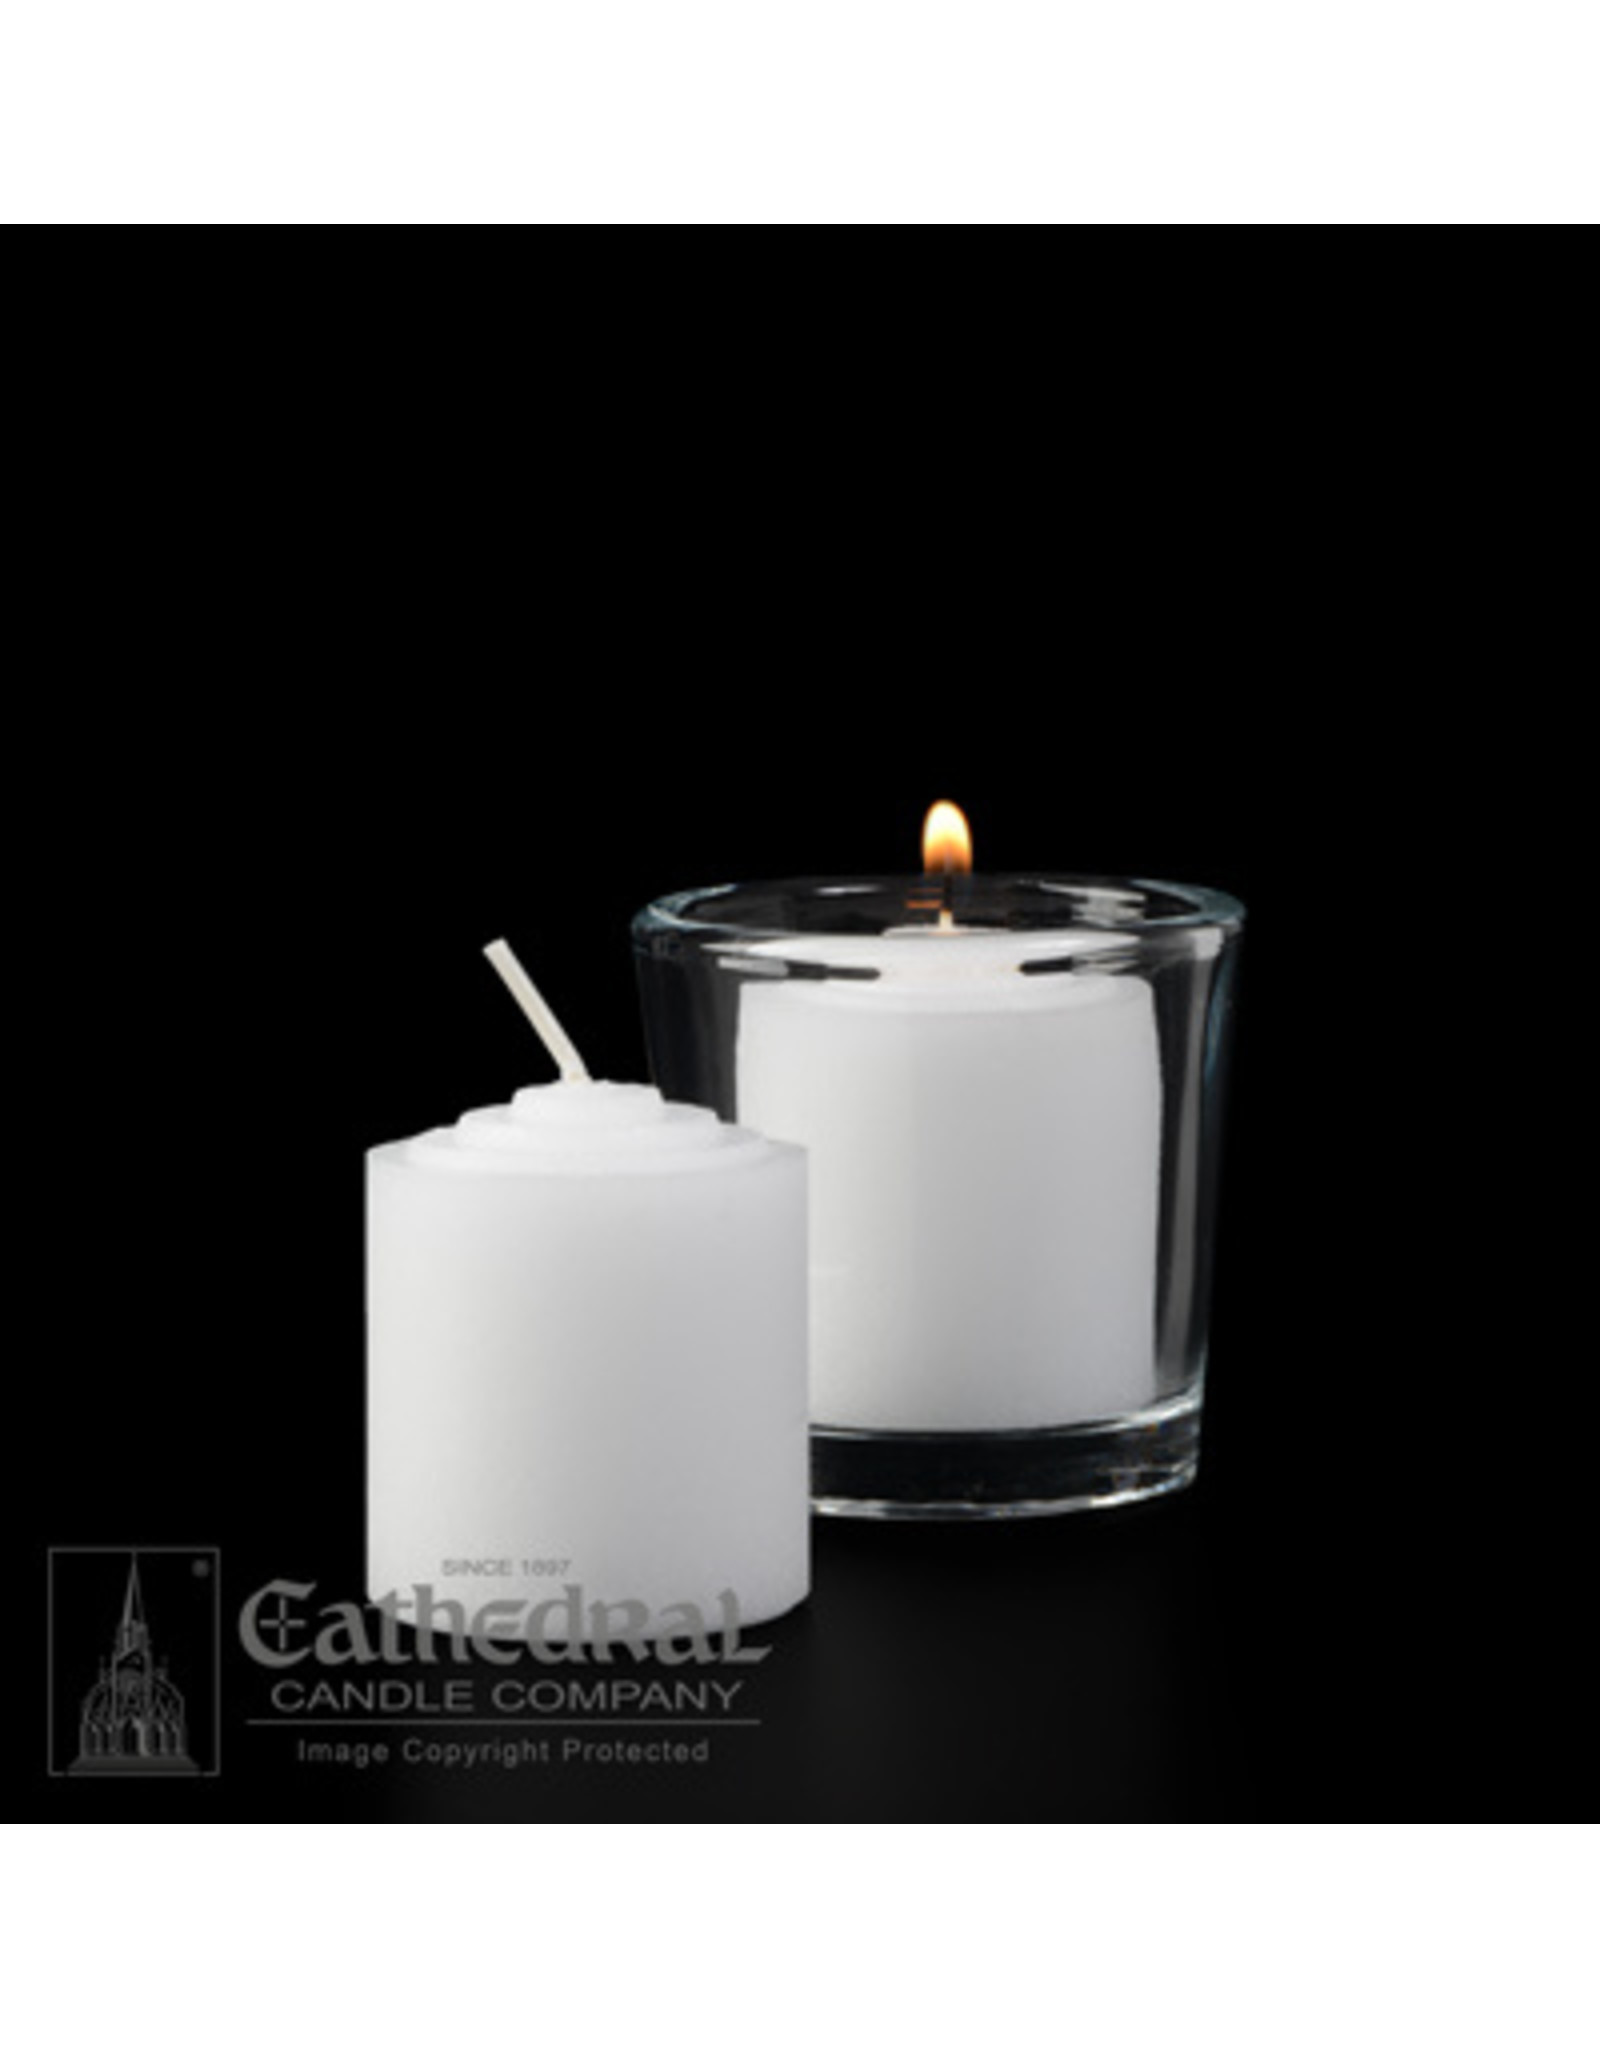 10-Hour Votive Candles (Box of 72)